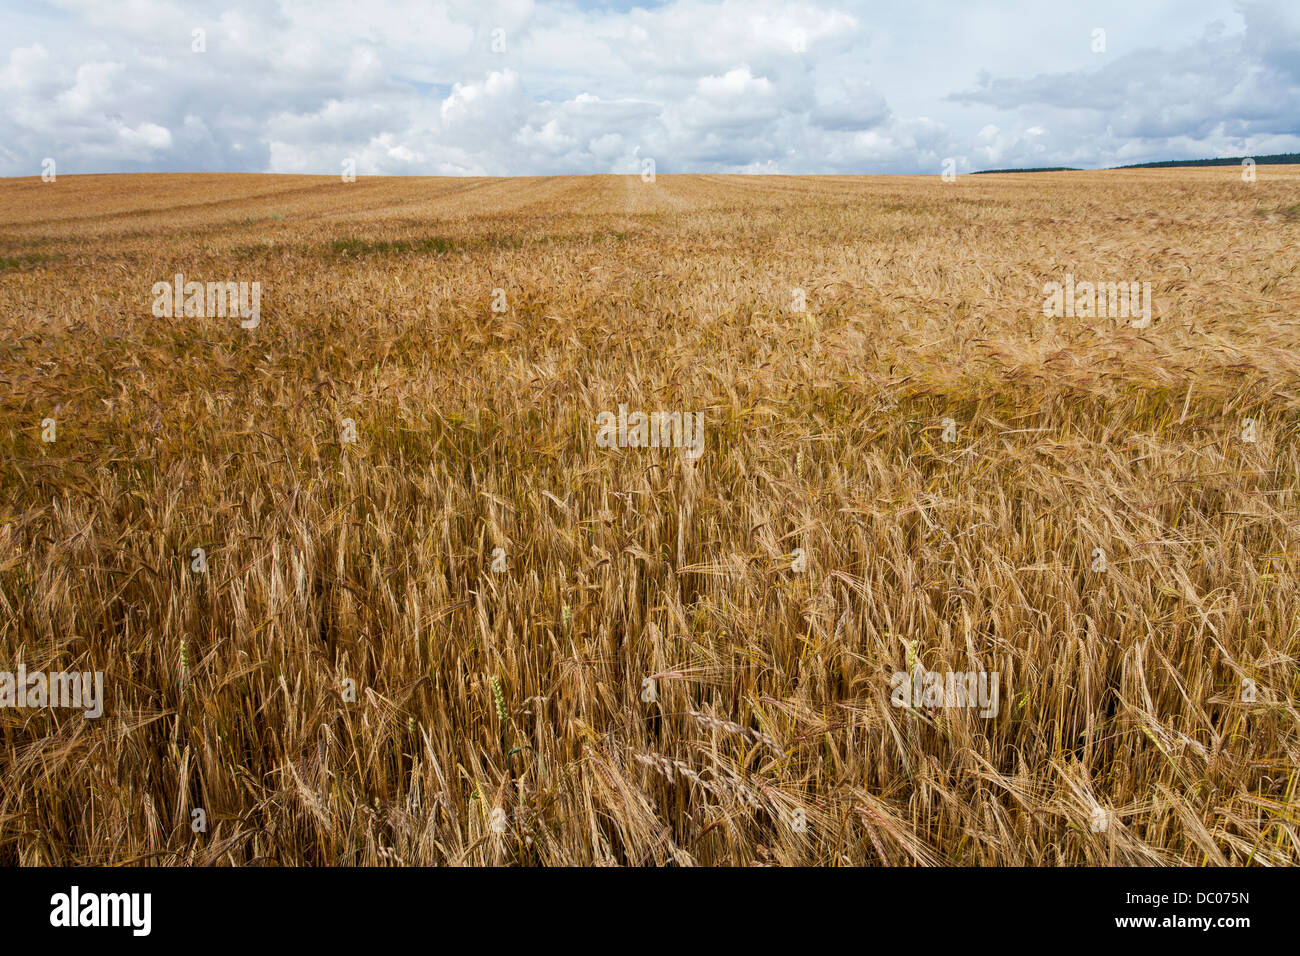 Barley field on the Cleveland Way footpath near Scarborough in North Yorkshire. Field almost ready for harvest. - Stock Image